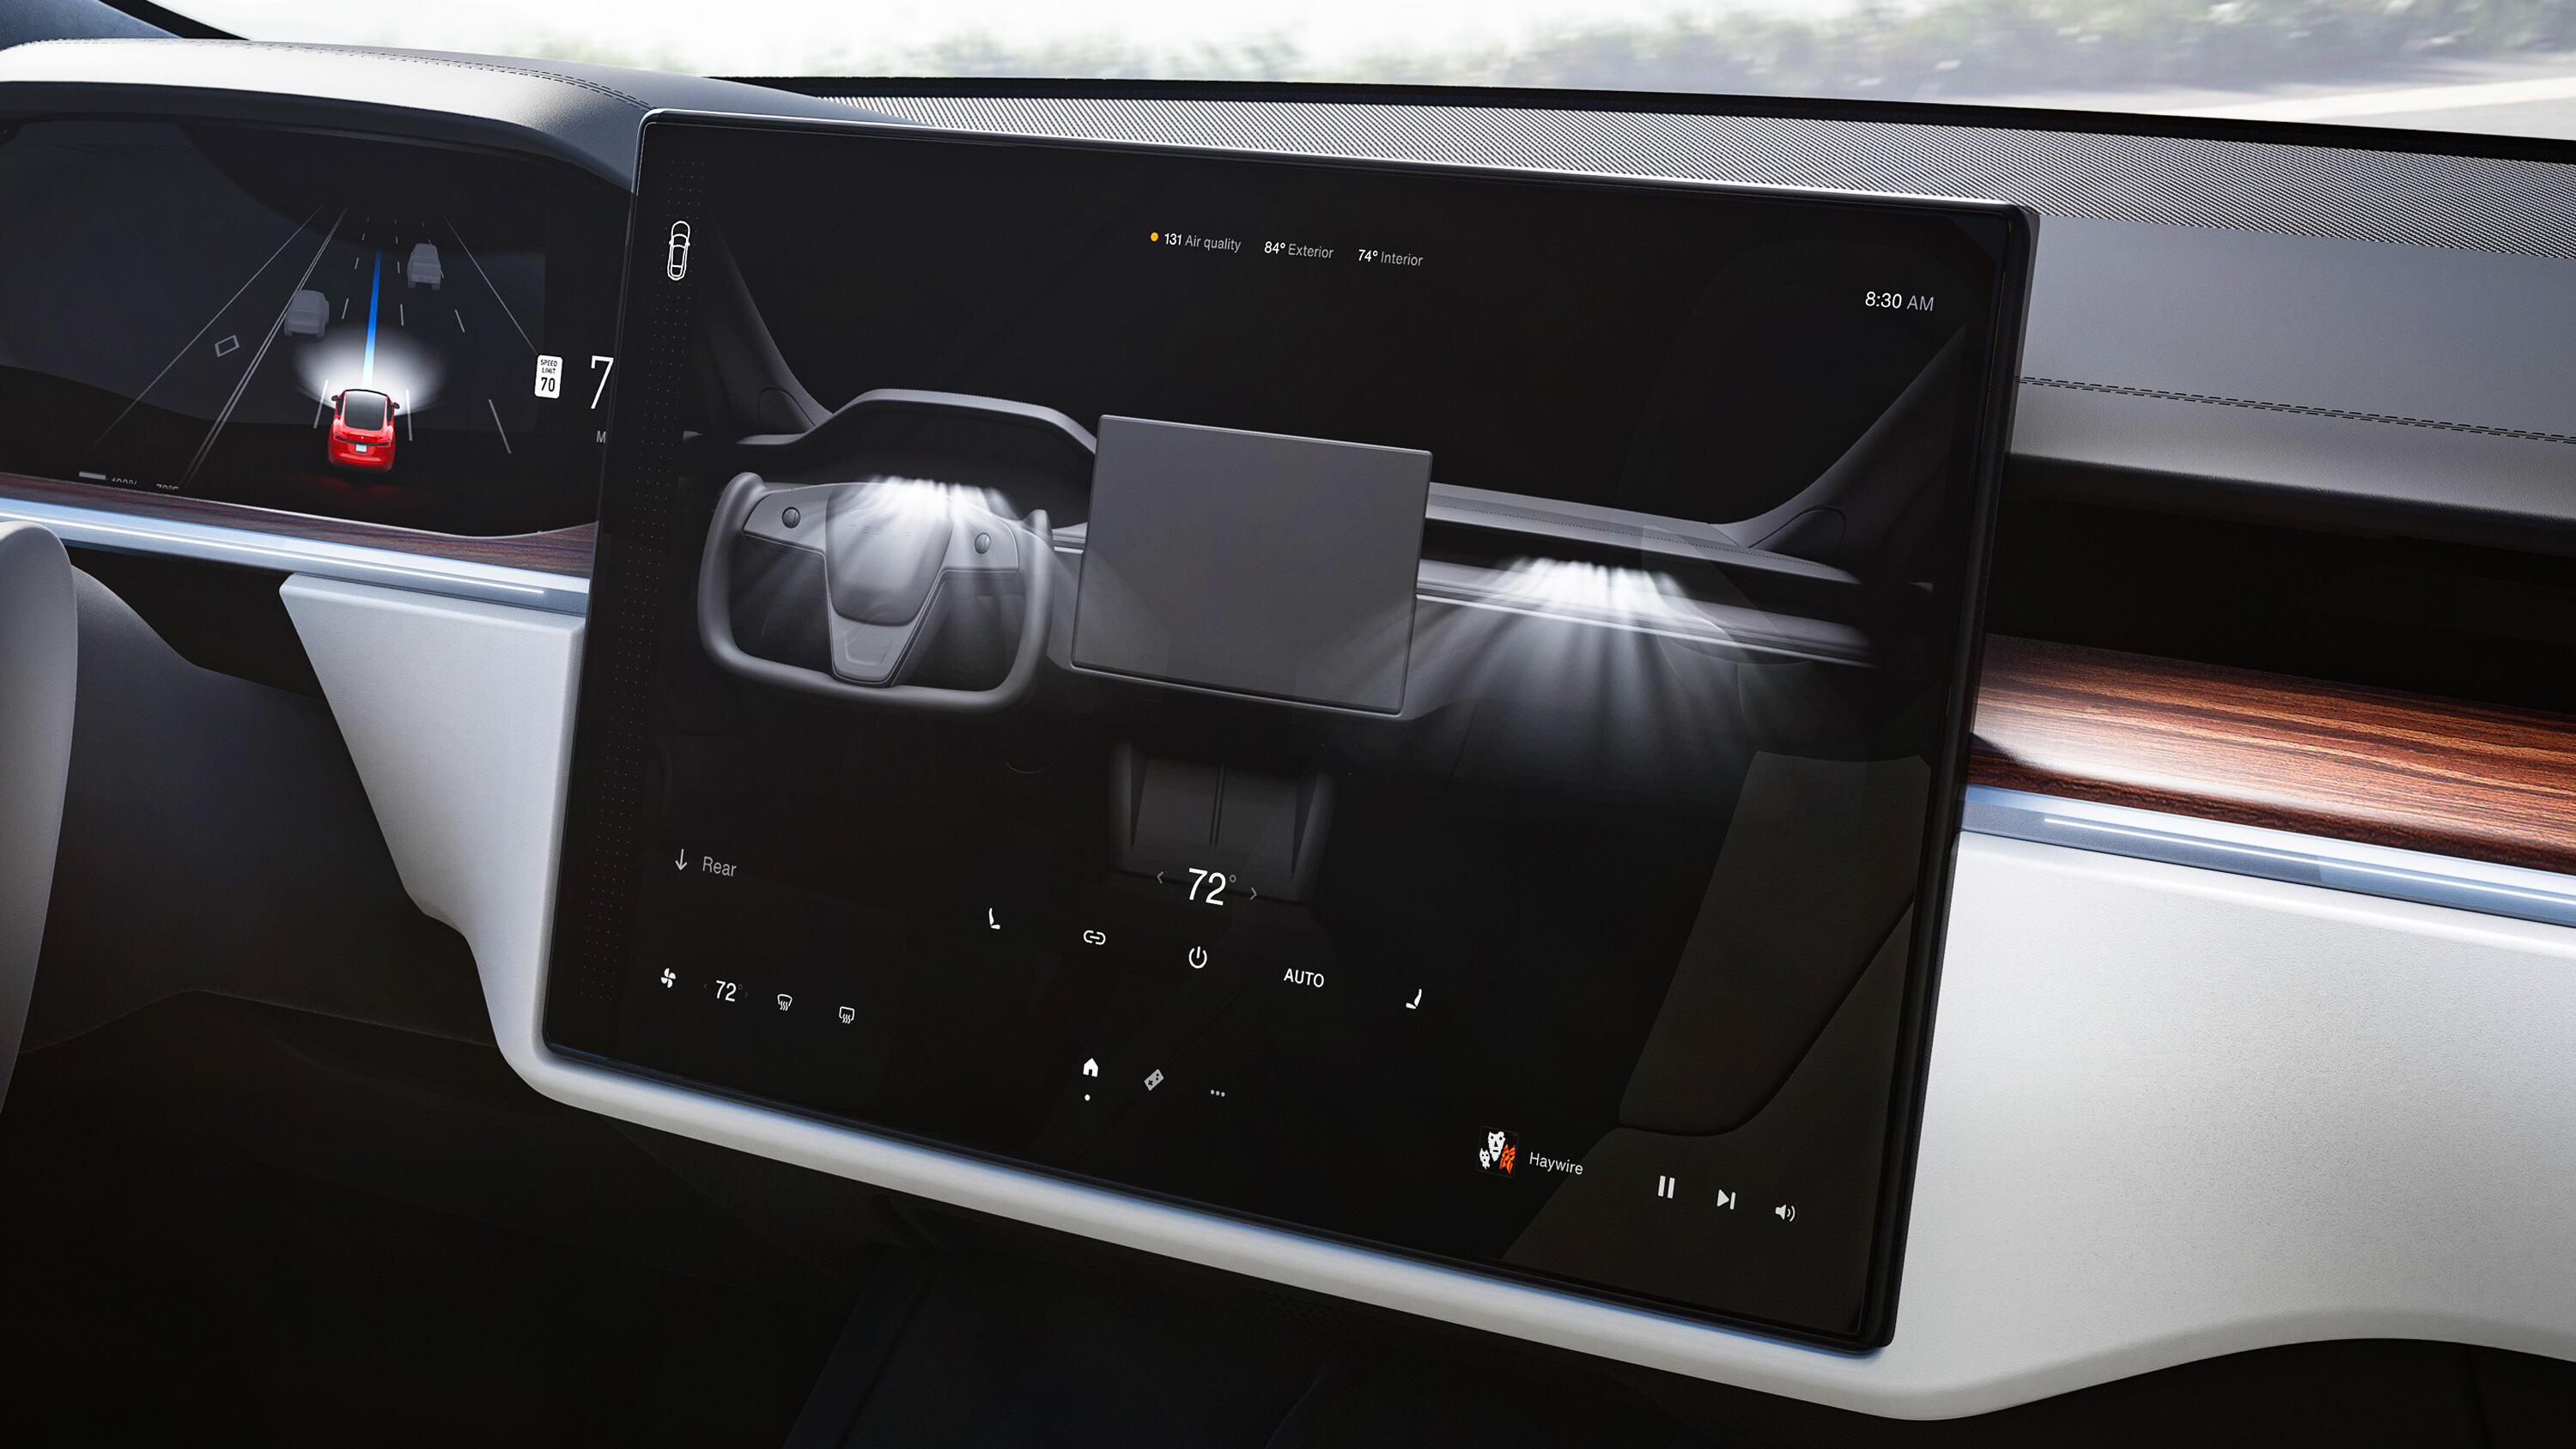 Video: Tesla's touchscreen gear selector raises concerns in the auto industry